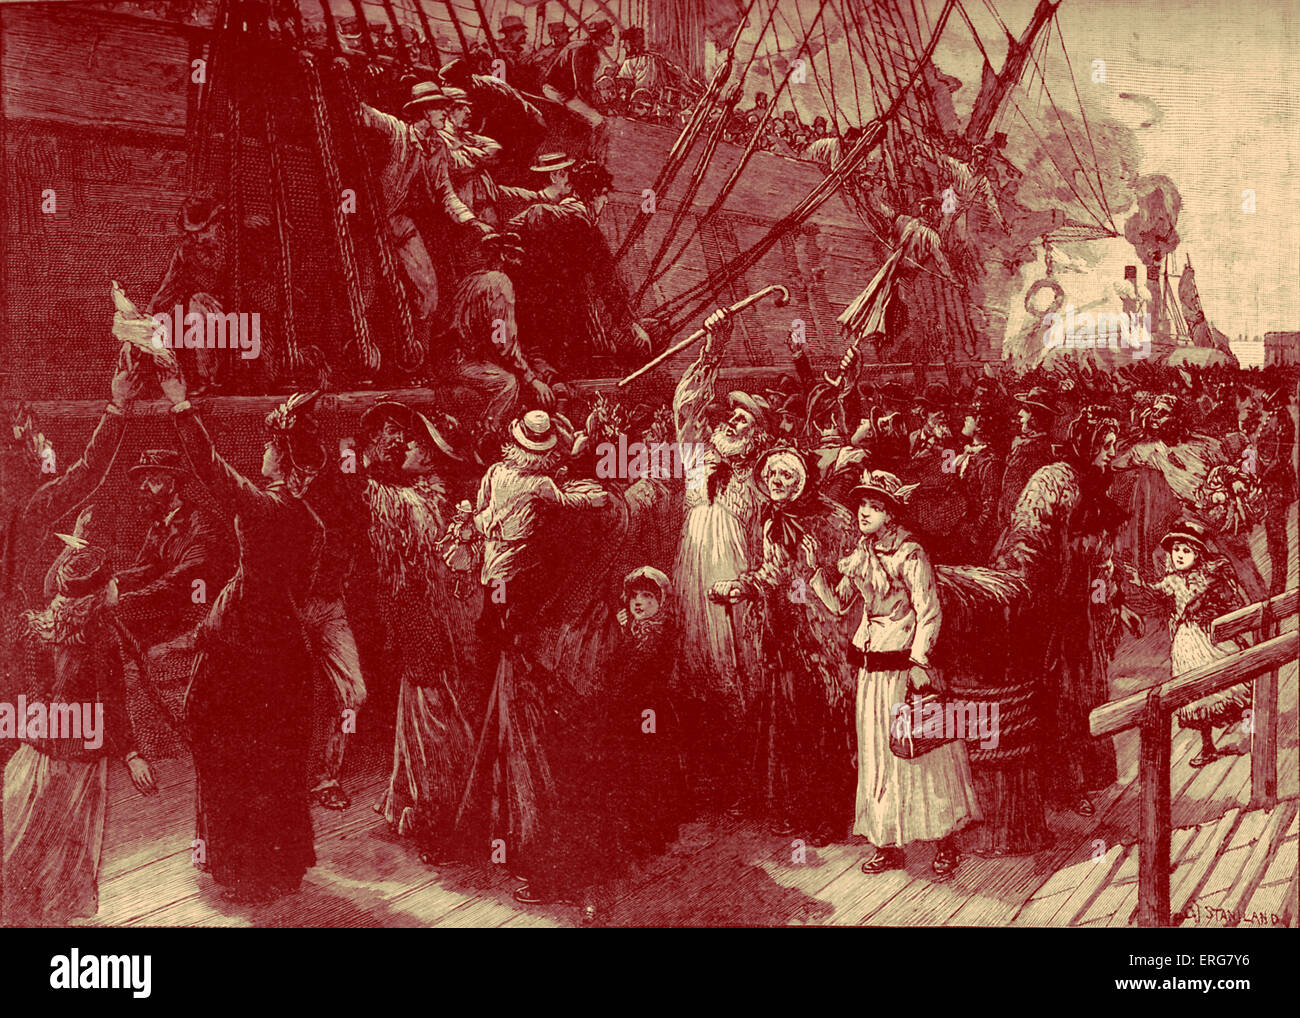 British emigrant ship to colonies - late 19th century - Stock Image